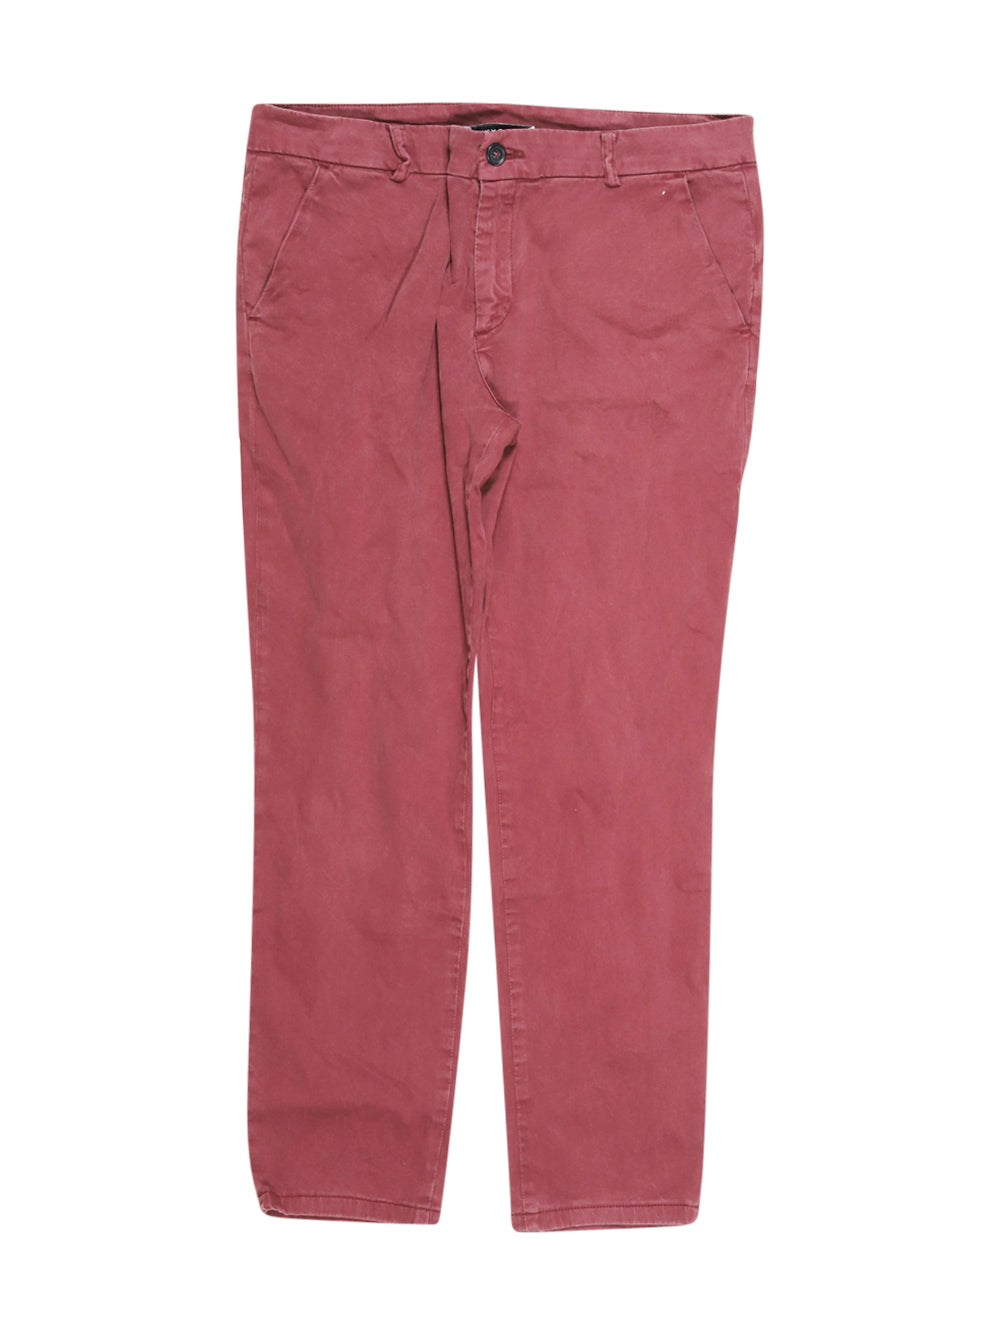 Front photo of Preloved Caractère Bordeaux Woman's trousers - size 12/L